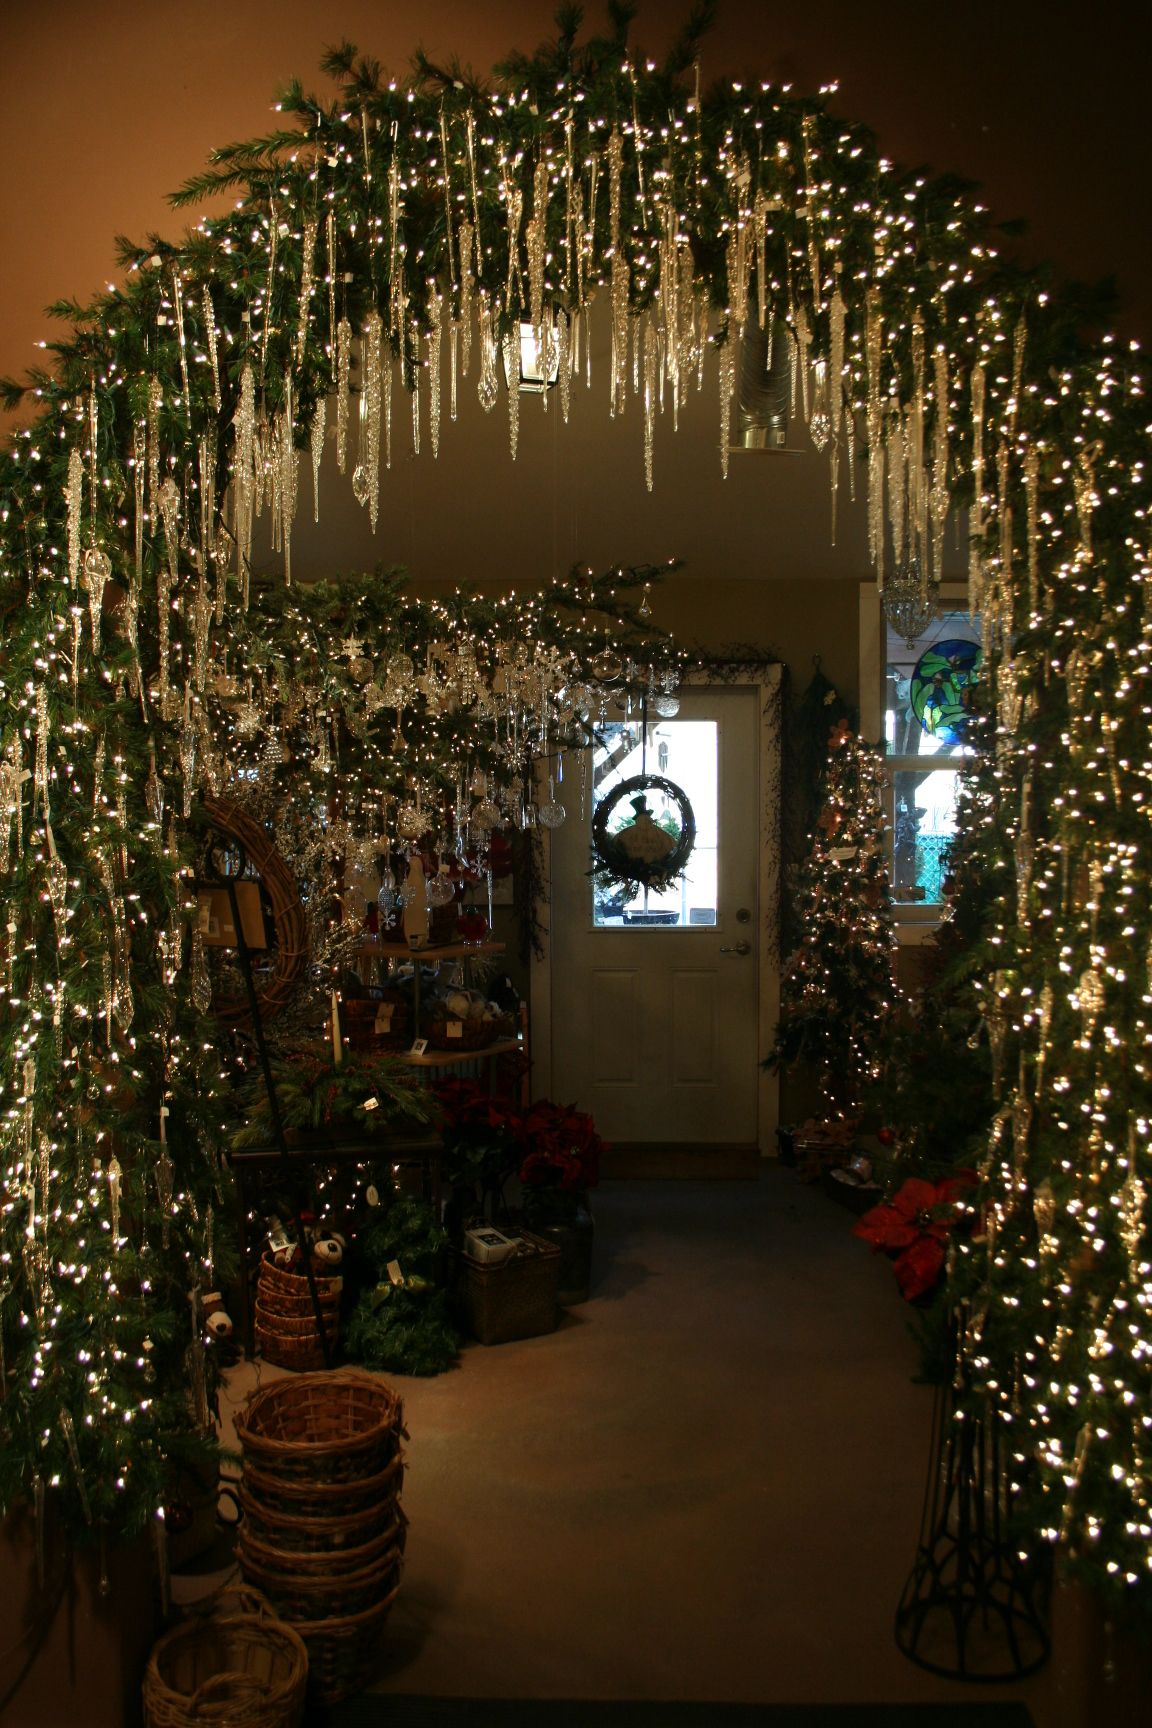 2200 Twinkle Lights And Glass Iciclesdripping With Christmas